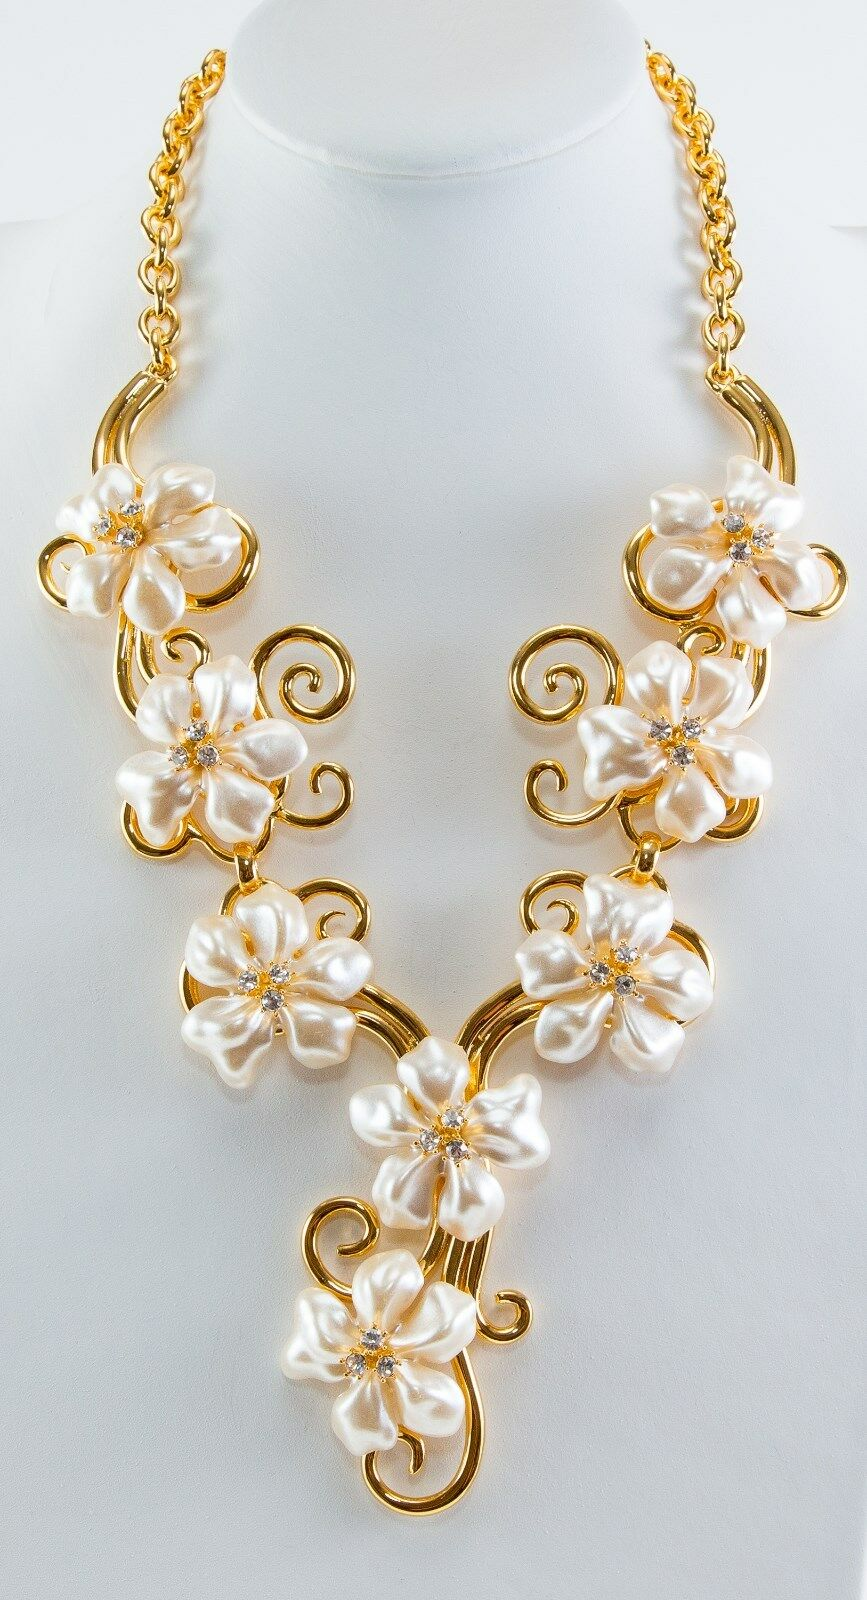 Kenneth Jay Lane White Pearl Flower Necklace White 60wP1l